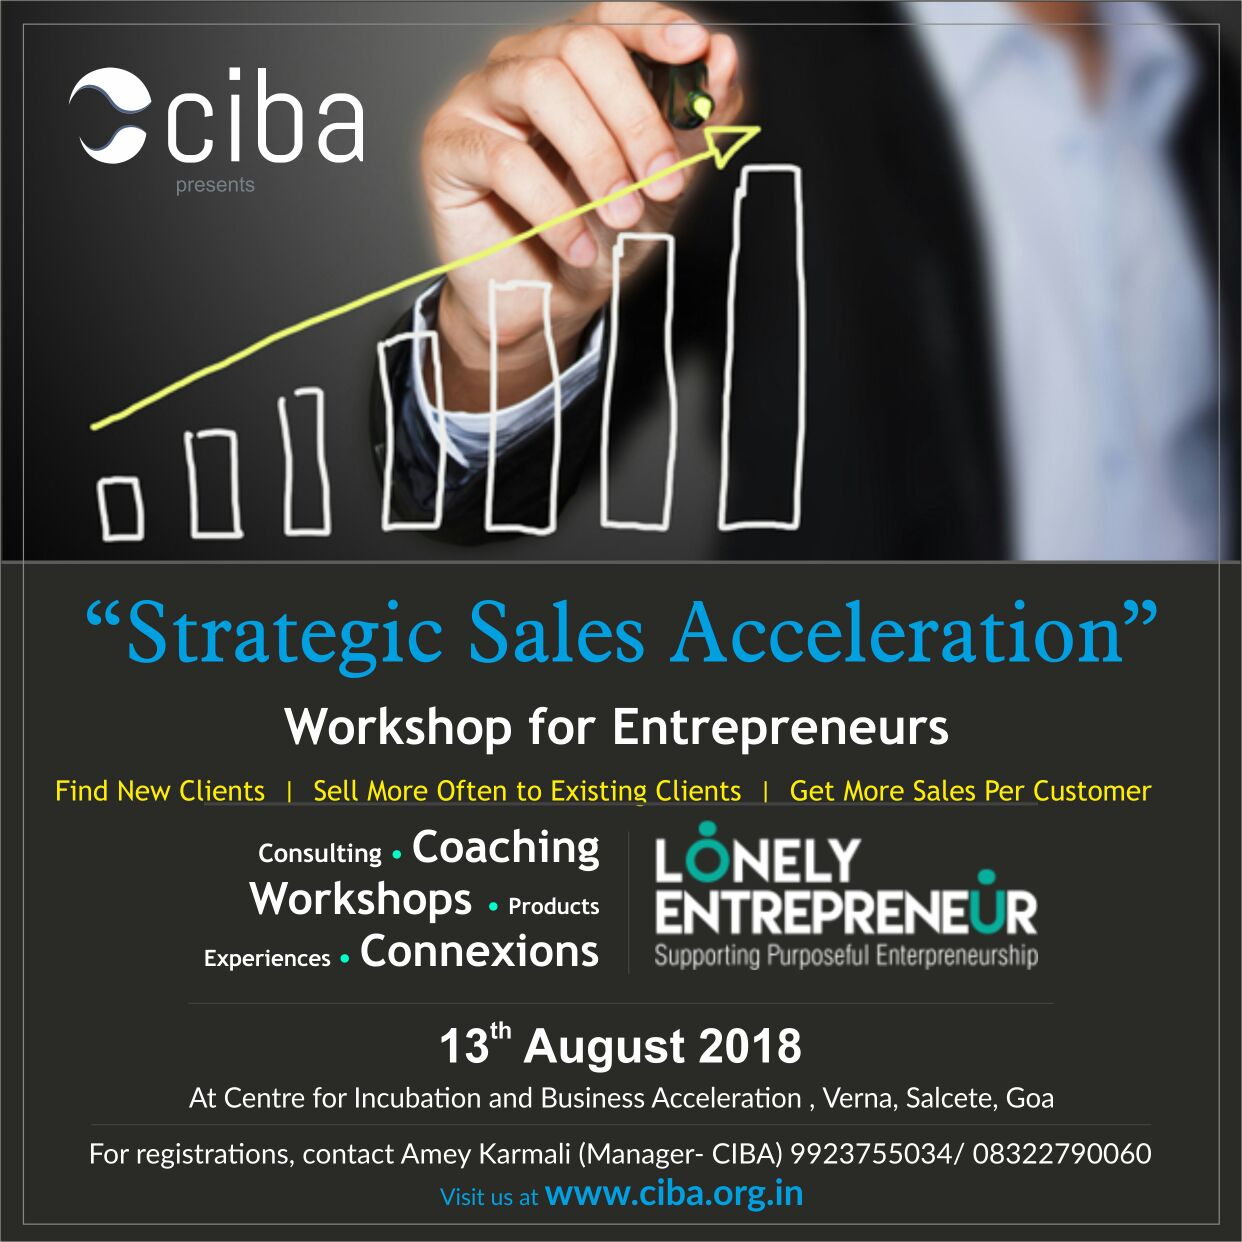 ciba-Strategic Sales Acceleration